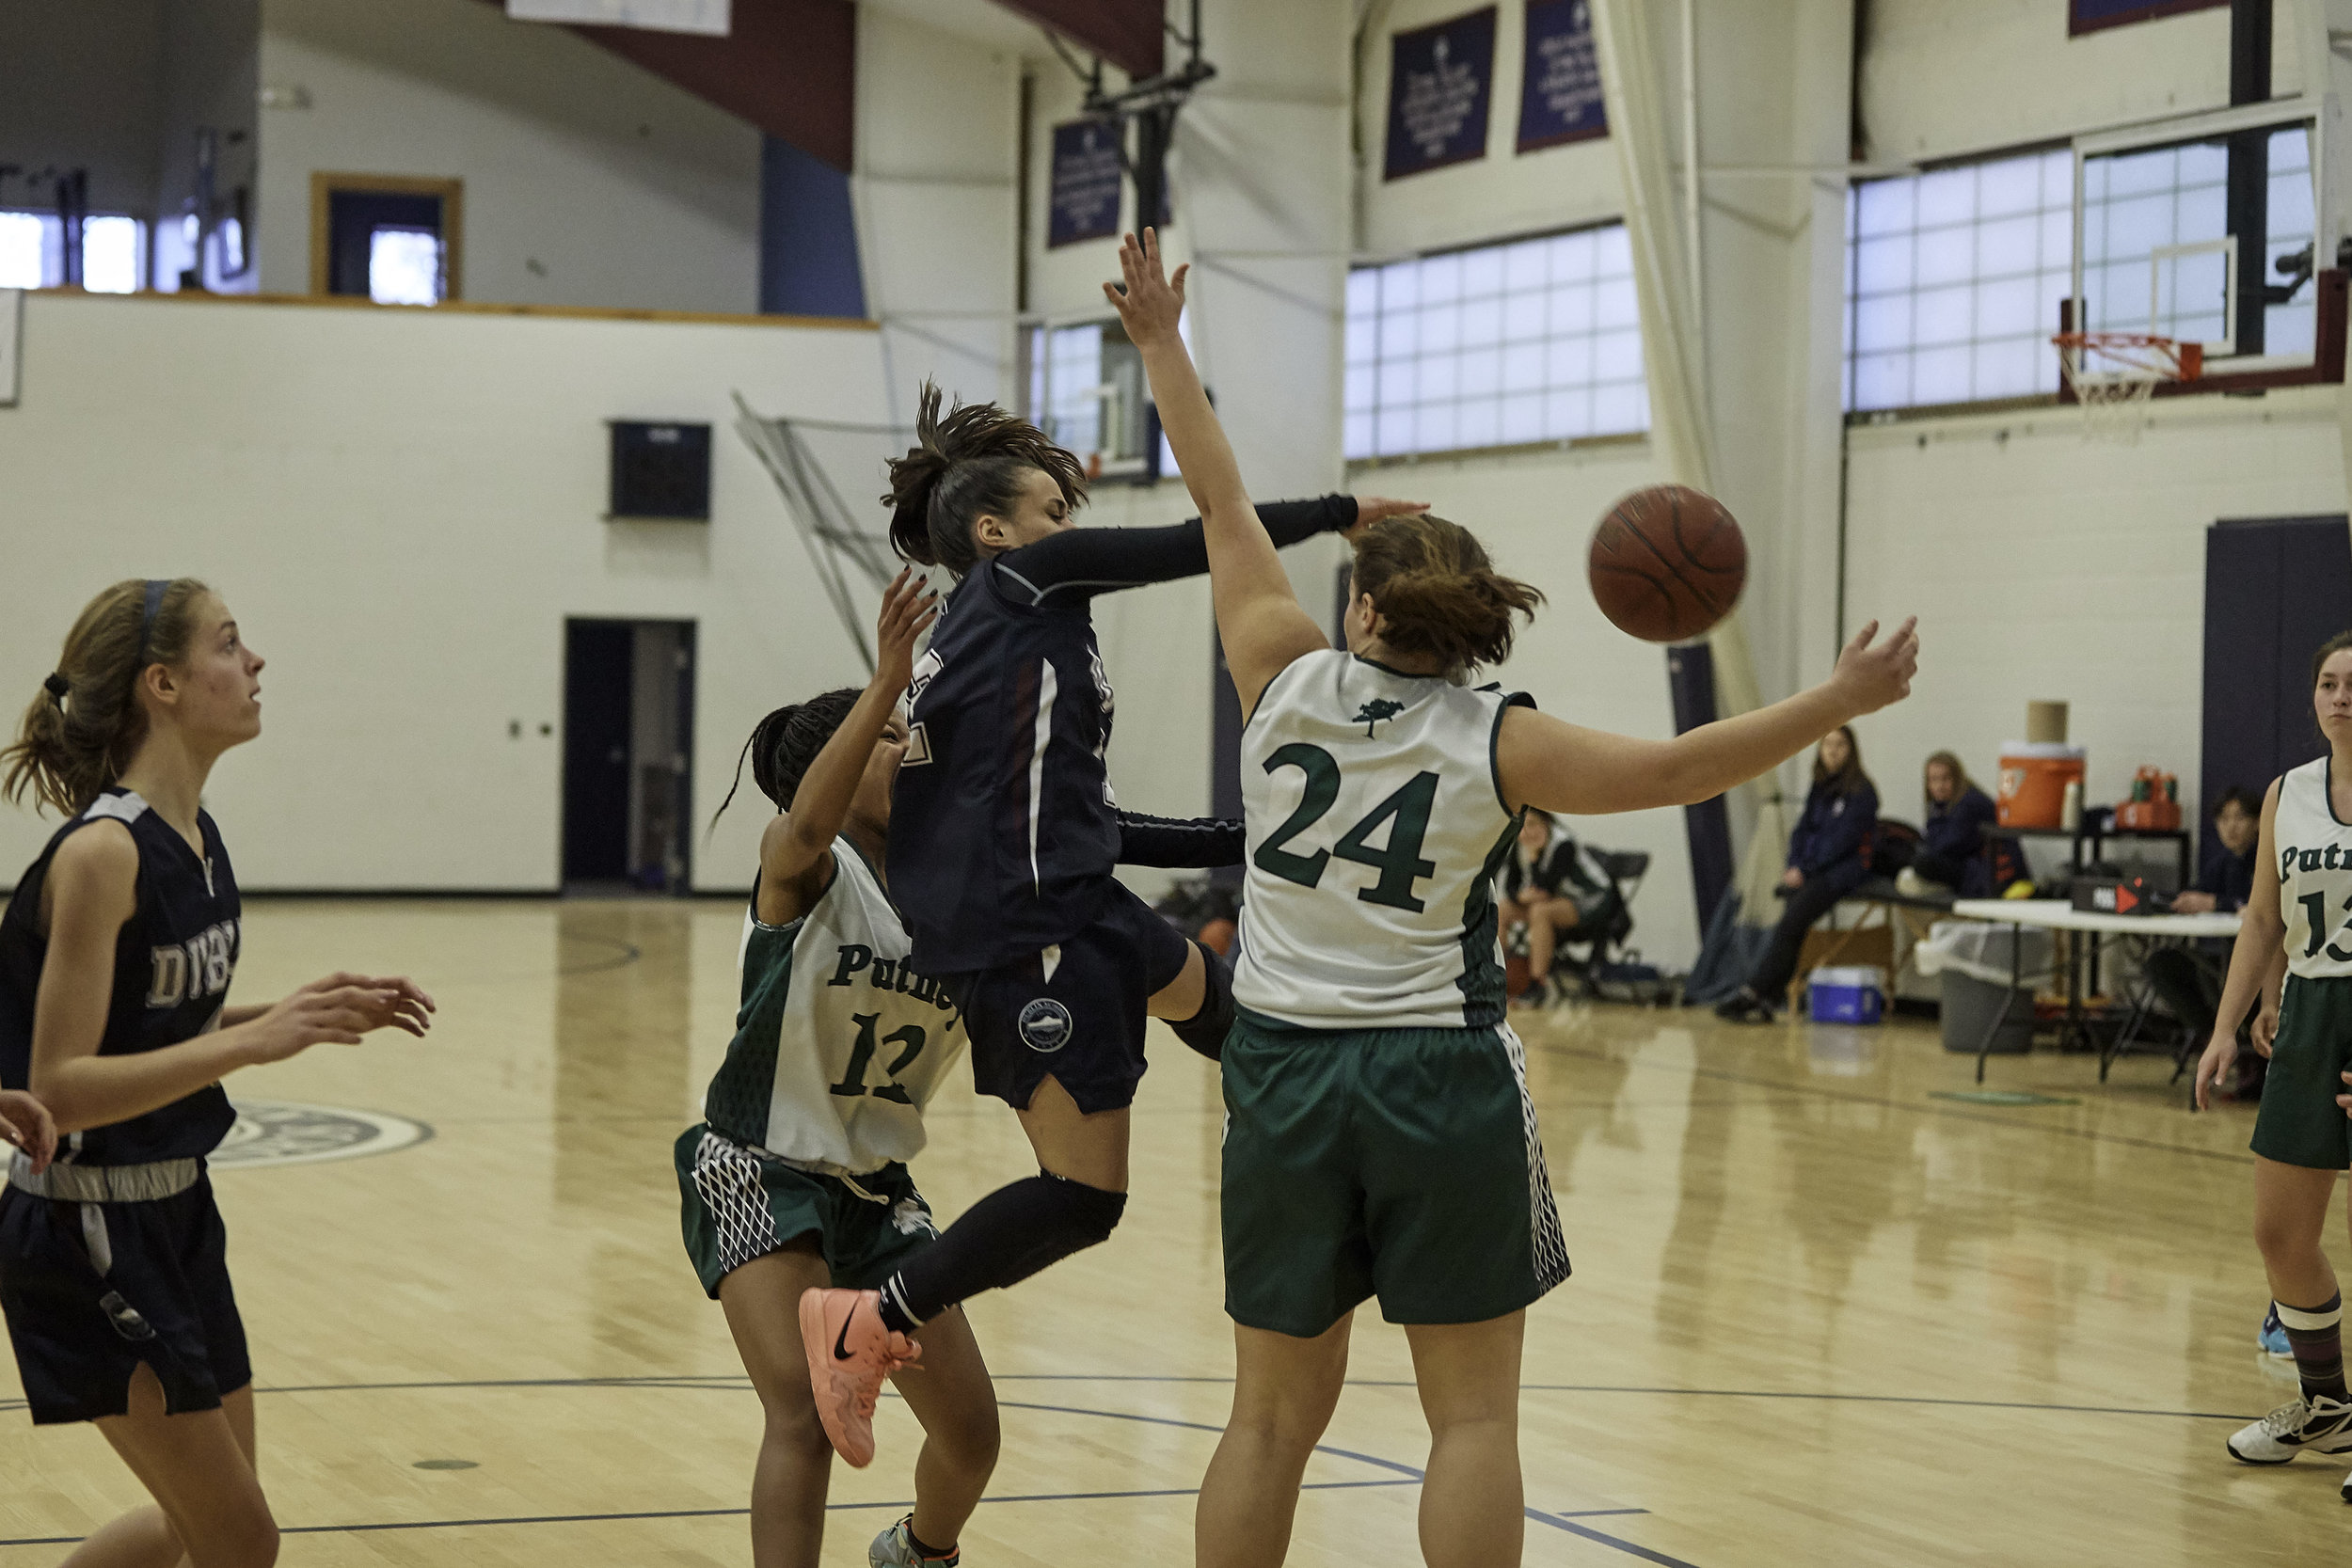 Basketball vs Putney School, February 9, 2019 - 167333.jpg